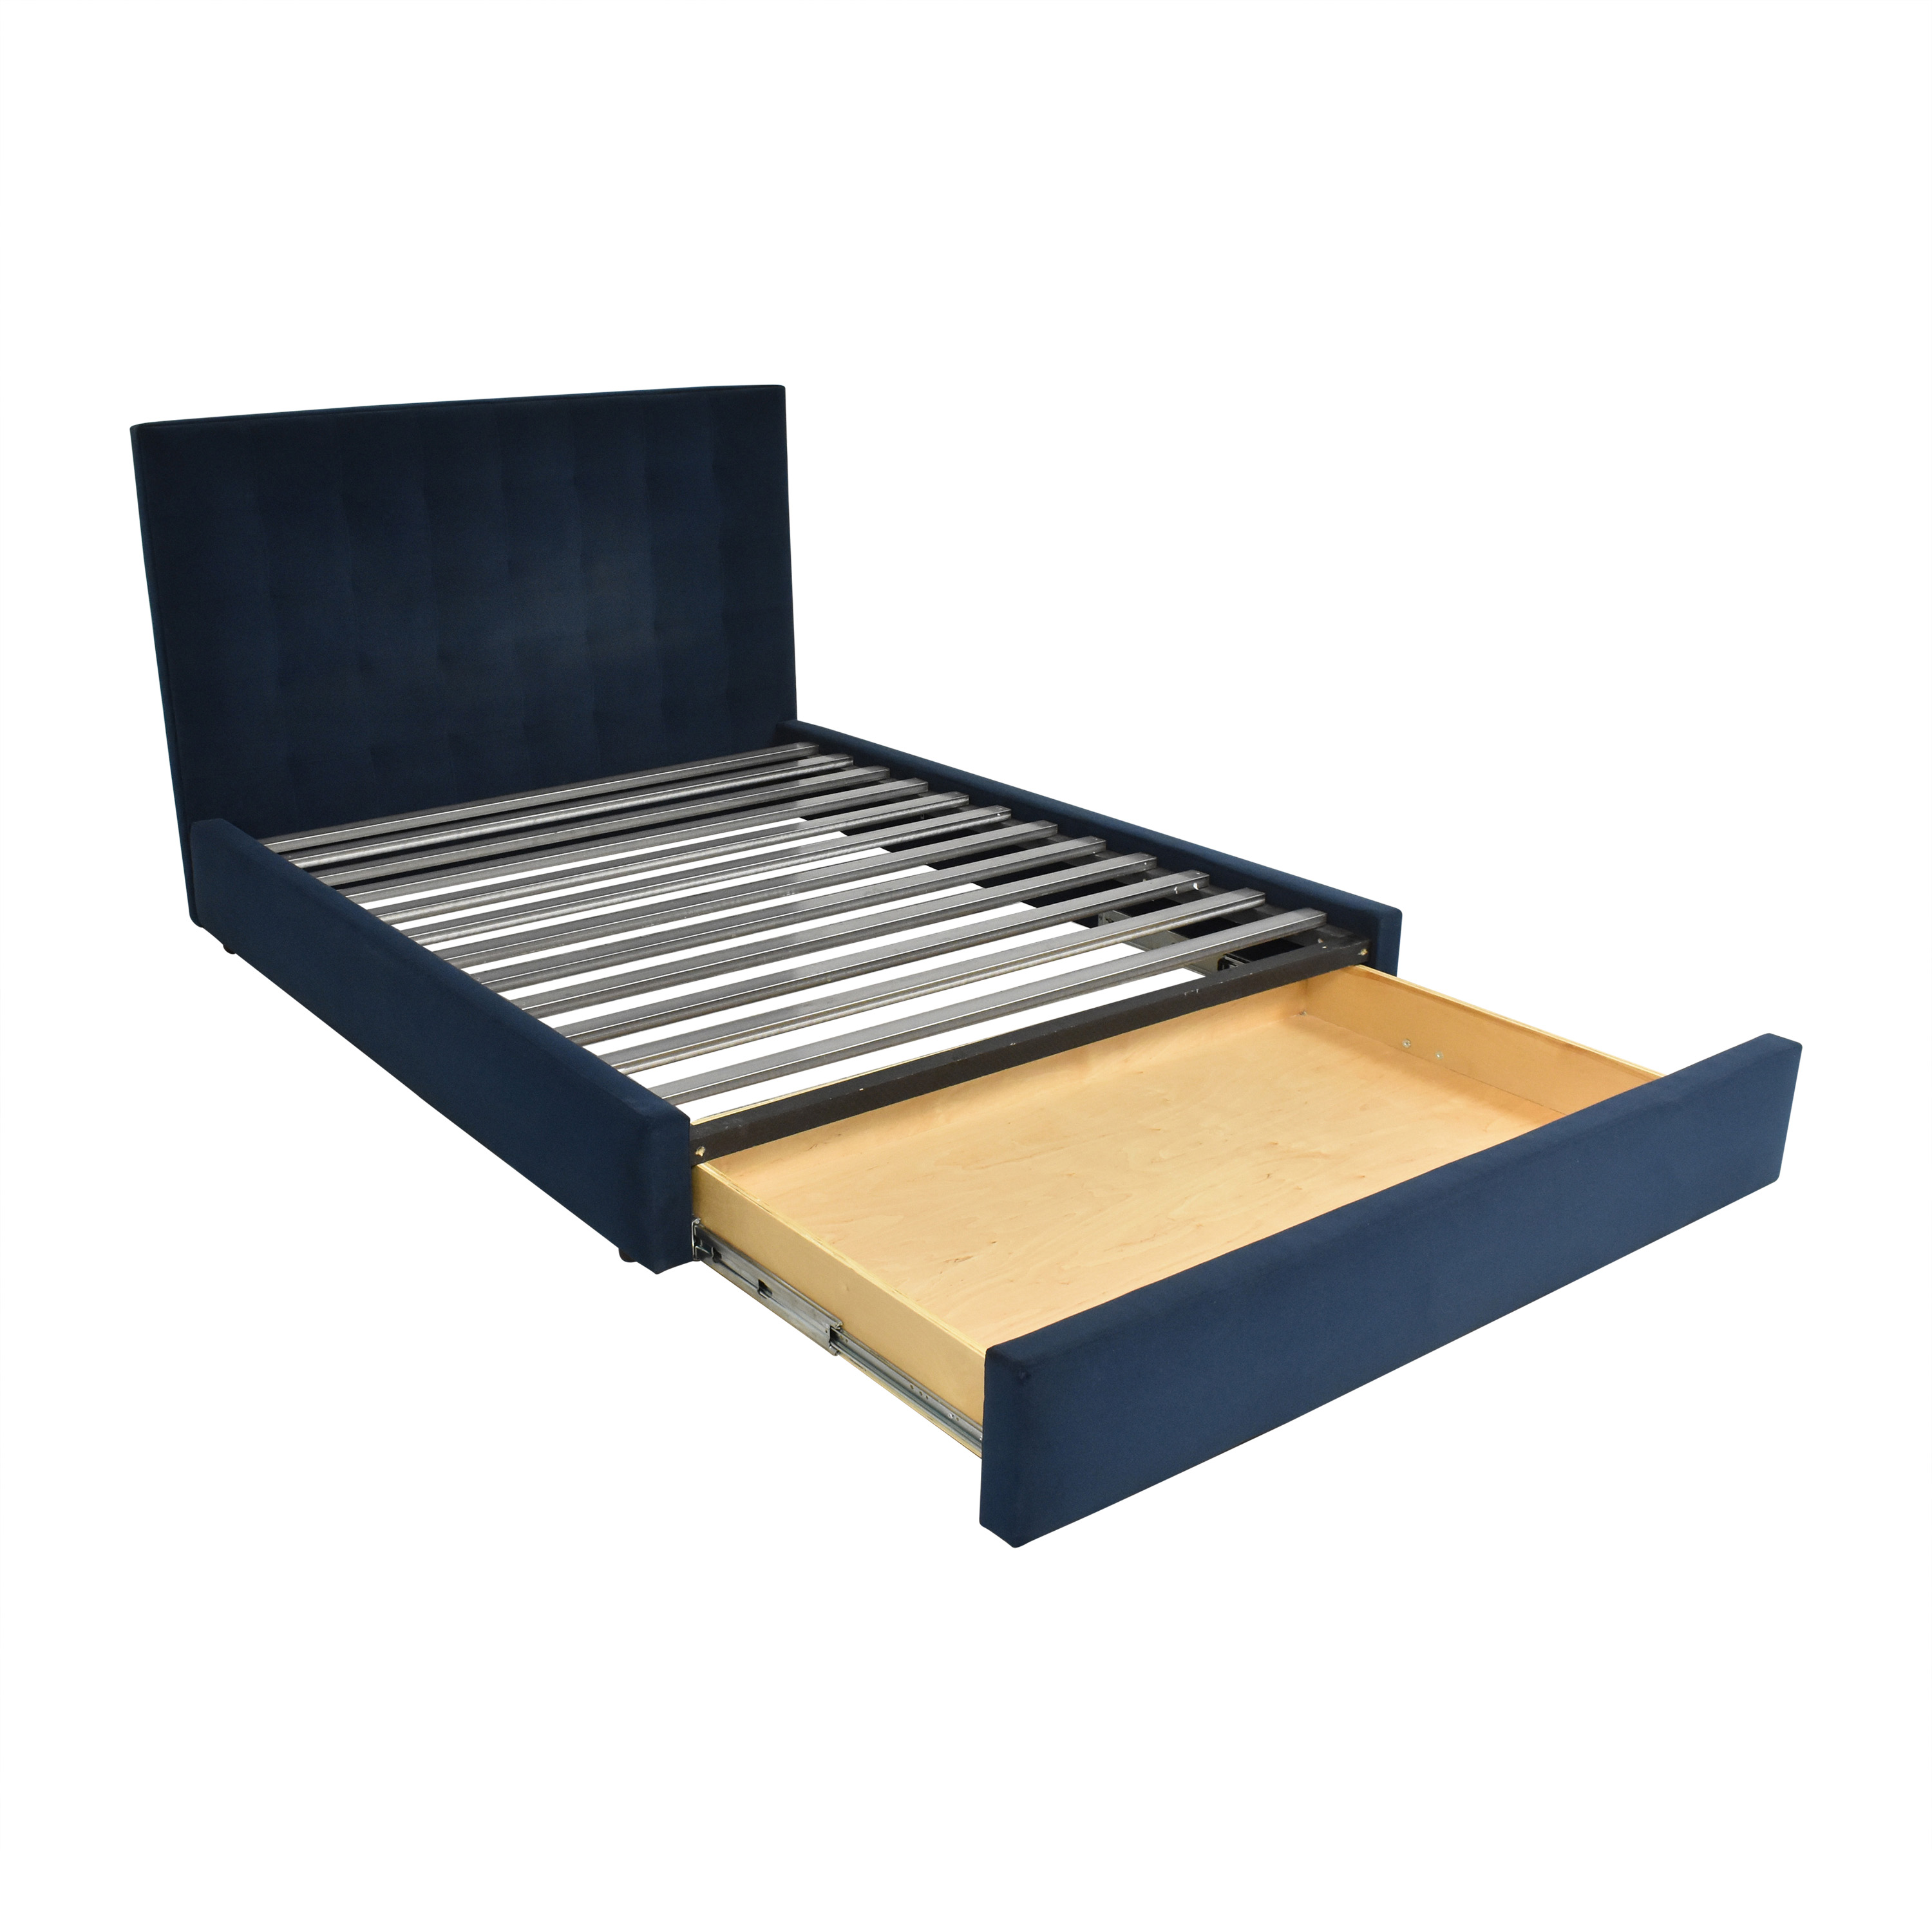 buy Room & Board Queen Avery Bed with Storage Drawer Room & Board Bed Frames